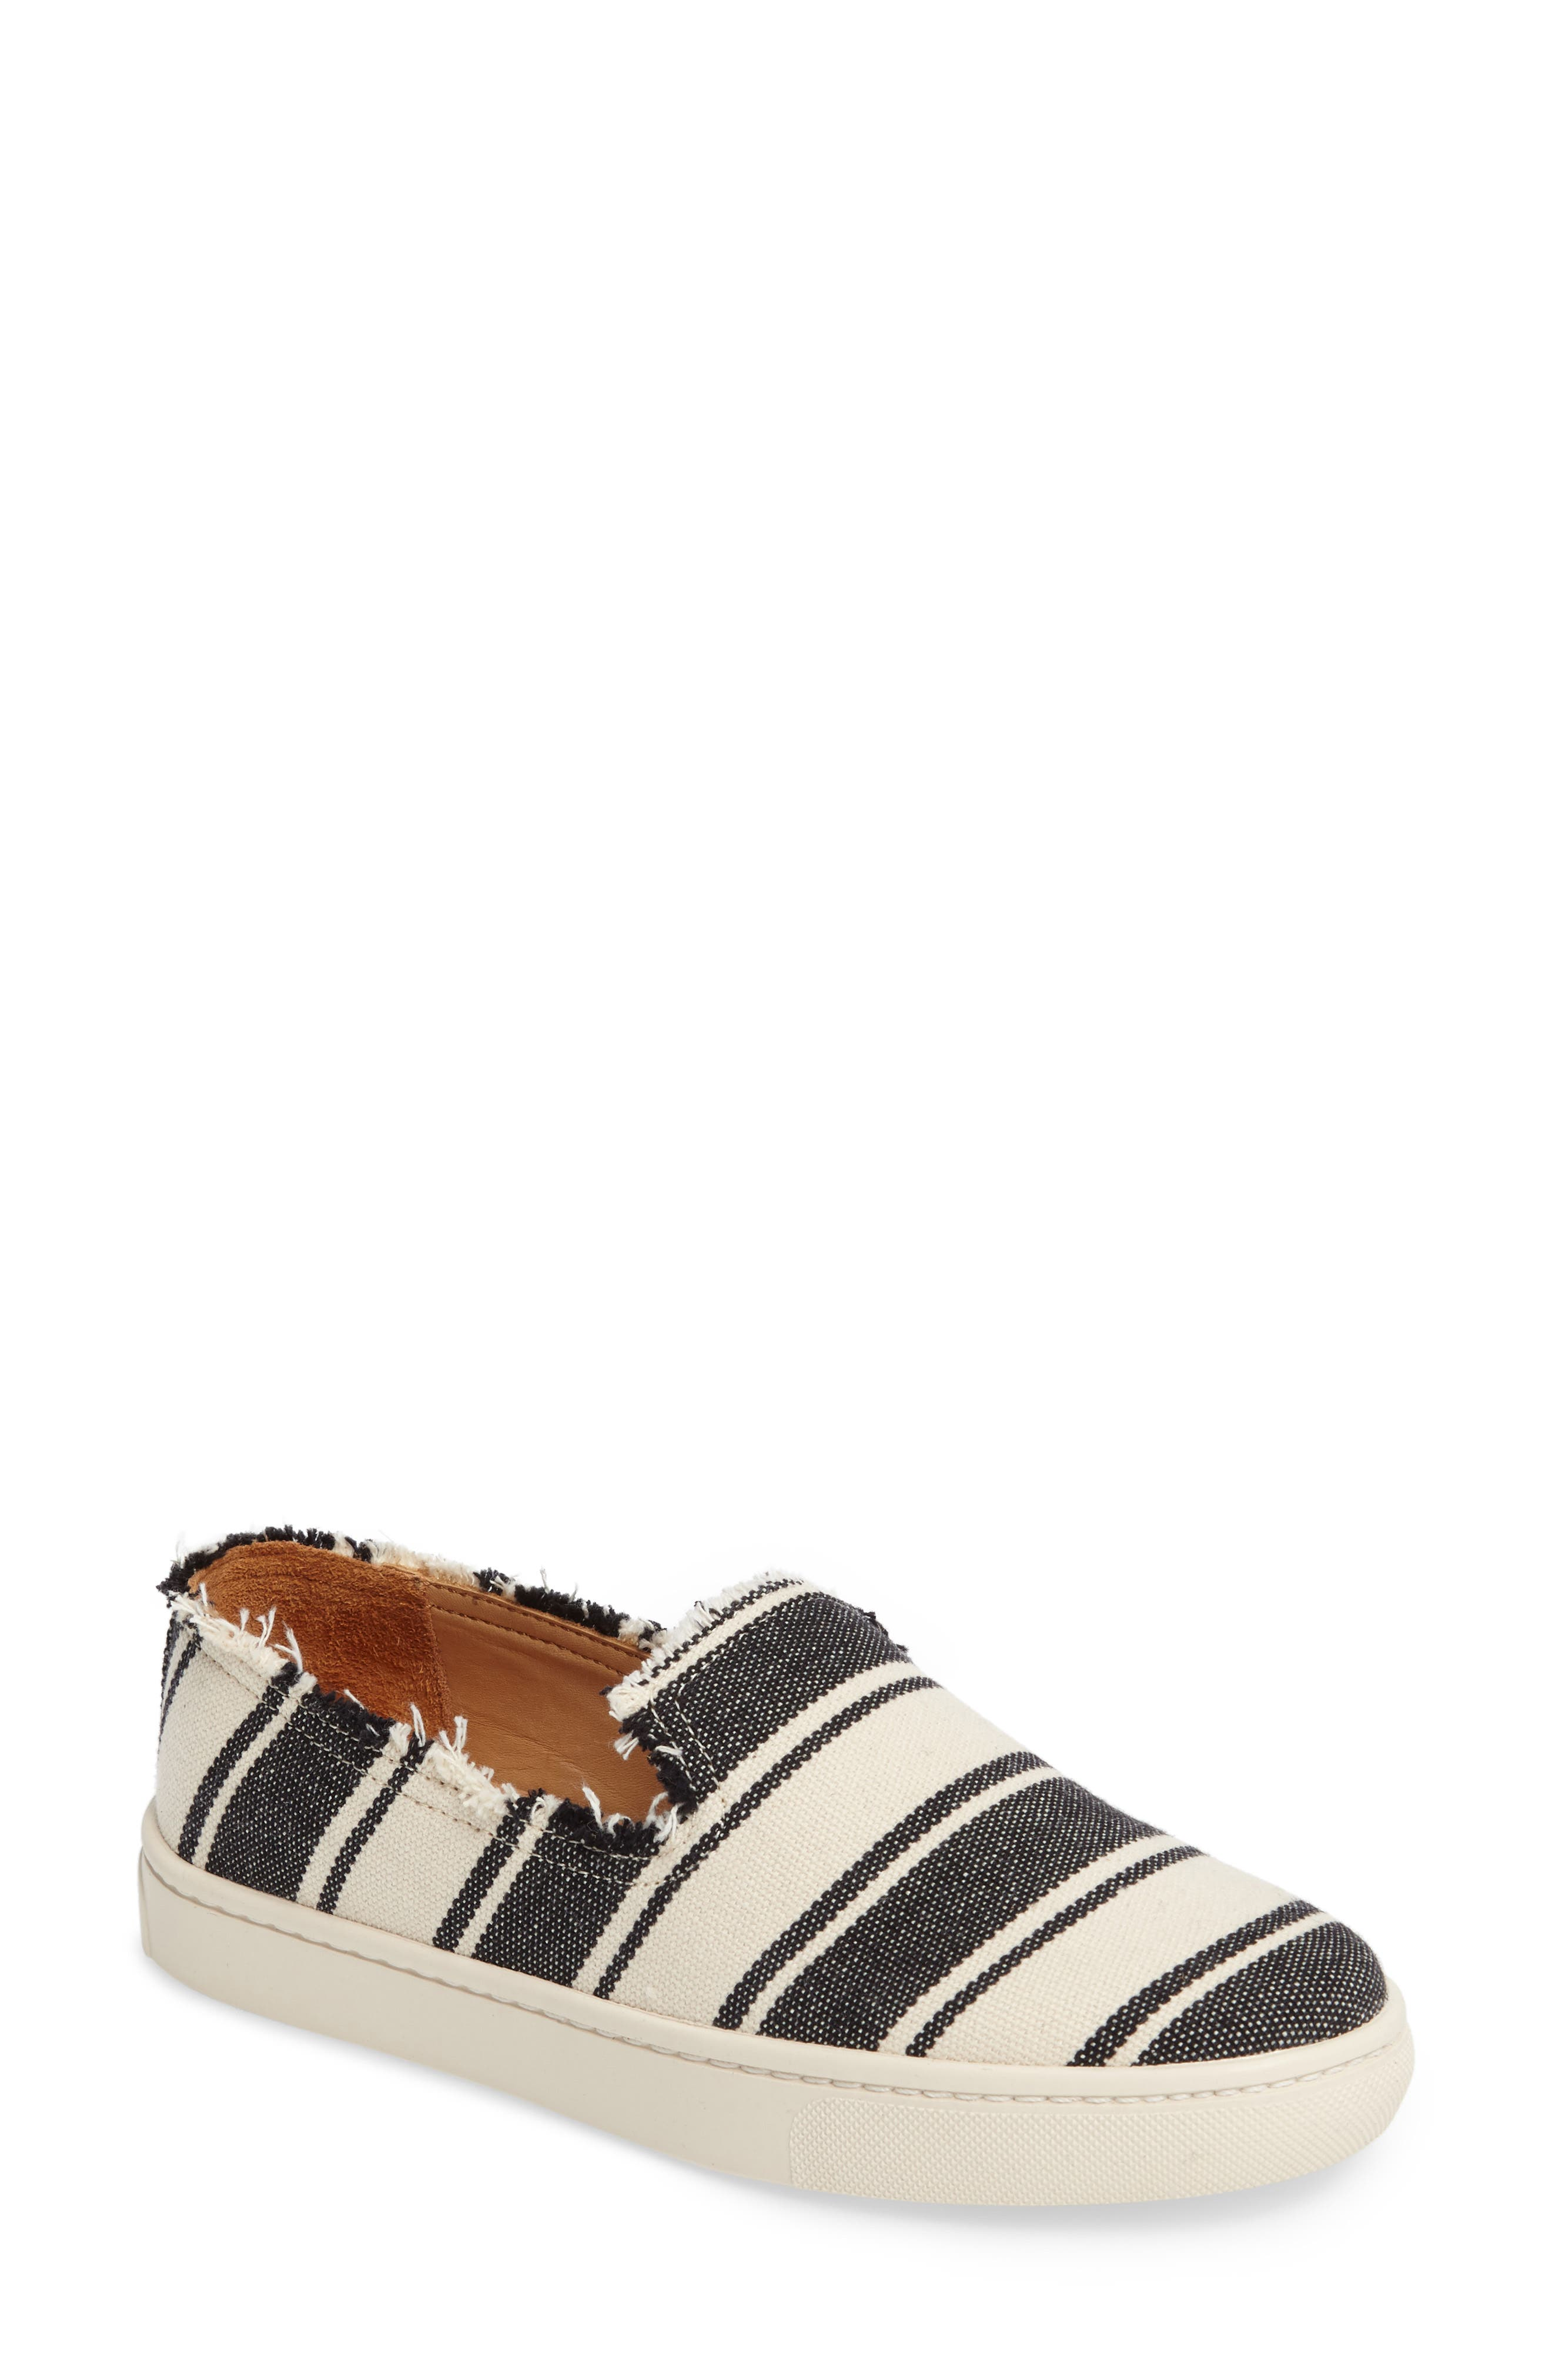 Soludos Stripe Slip-On Sneaker (Women)